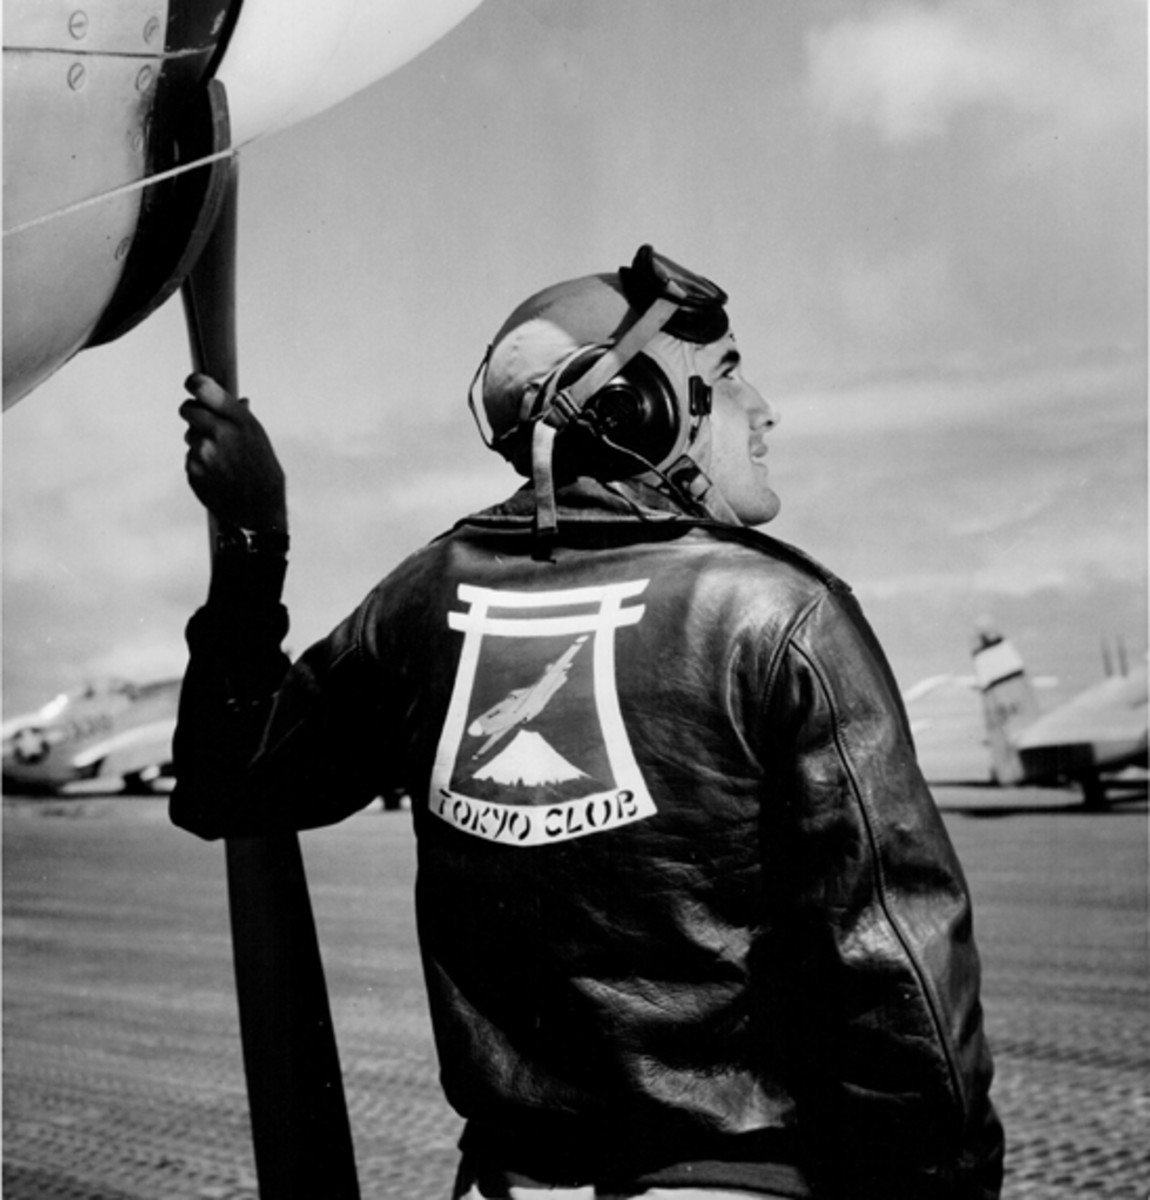 First Lieutenant William F. Savidge, Jr., of Tamaqua, Pennsylvania, proudly wearing his A-2 jacket with the club's insignia painted on the back. The emblem features a Mustang flying over Fujiyama —Japan's iconic mountain, and framed by a Shinto design. Where do you suppose his jacket is today?